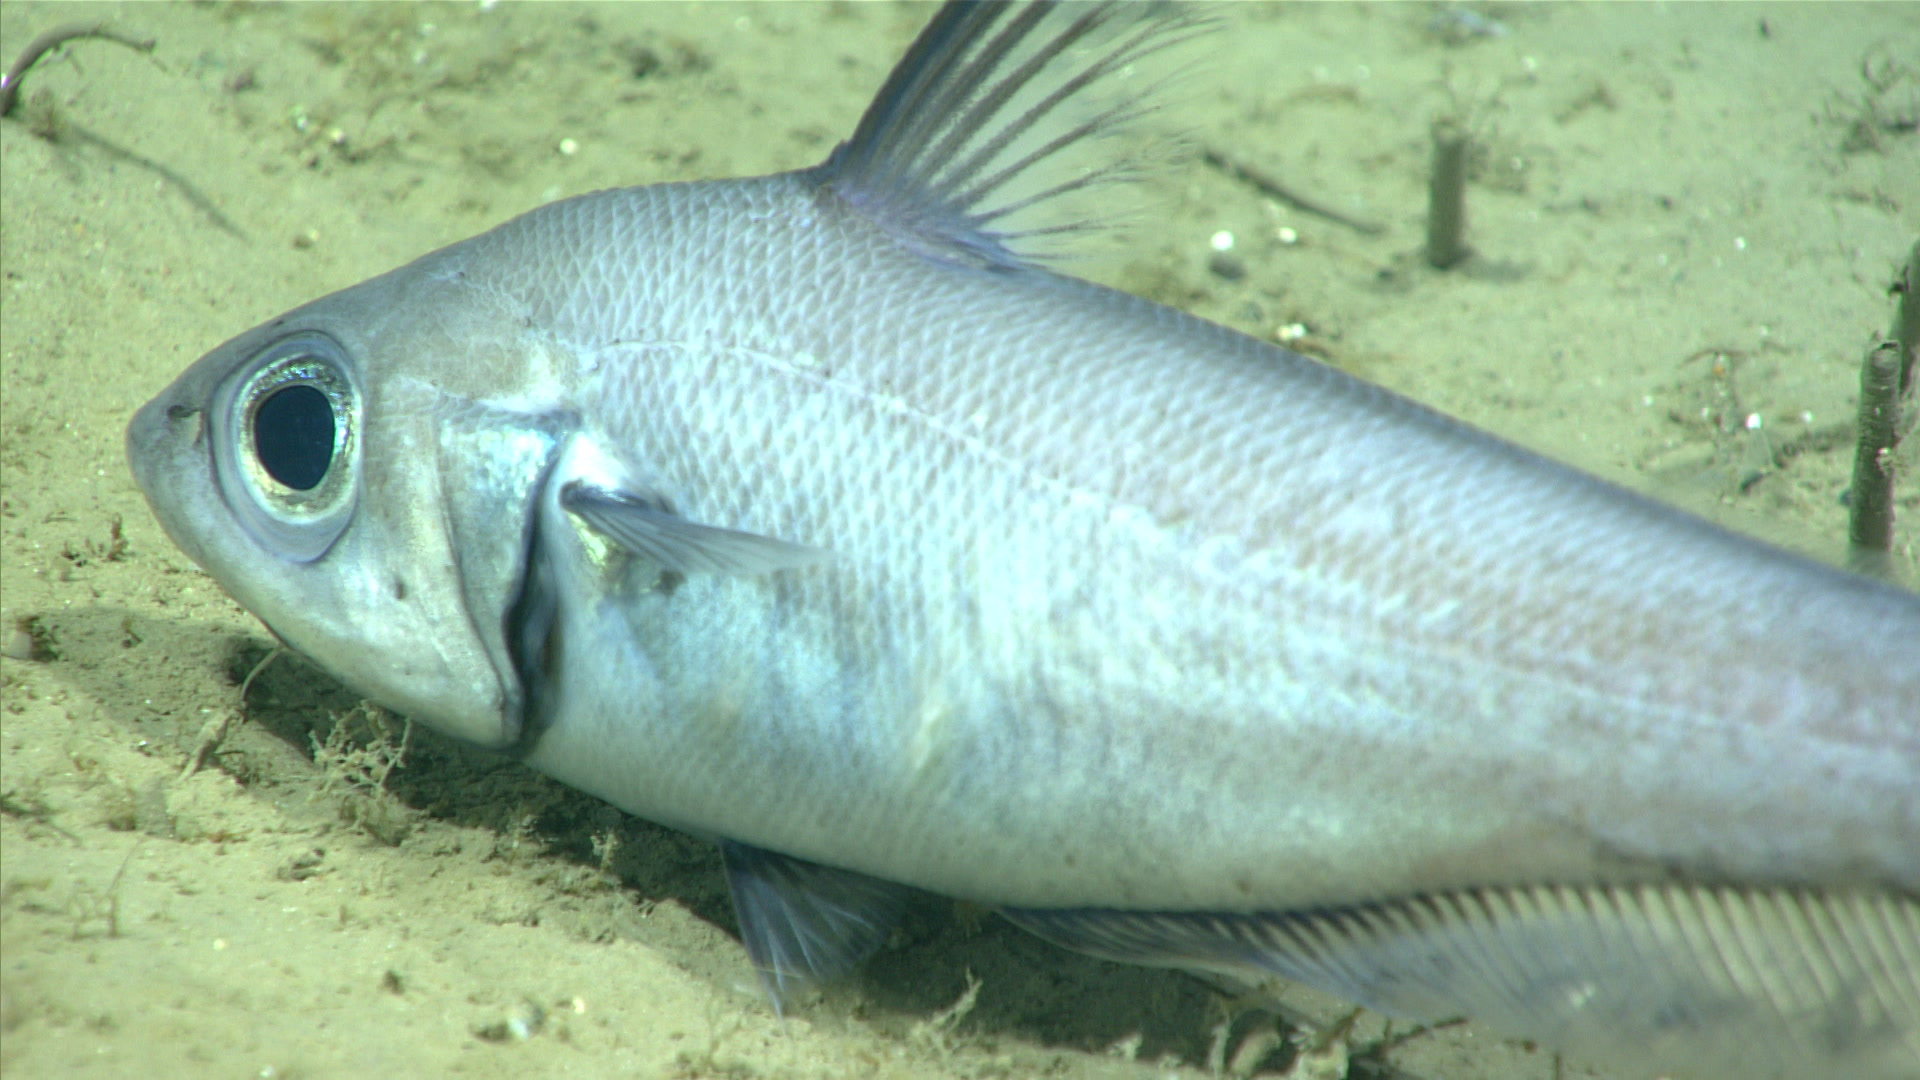 A roundnose grenadier, Coryphaenoides rupstris, rests on the seafloor in the Fundian Channel.